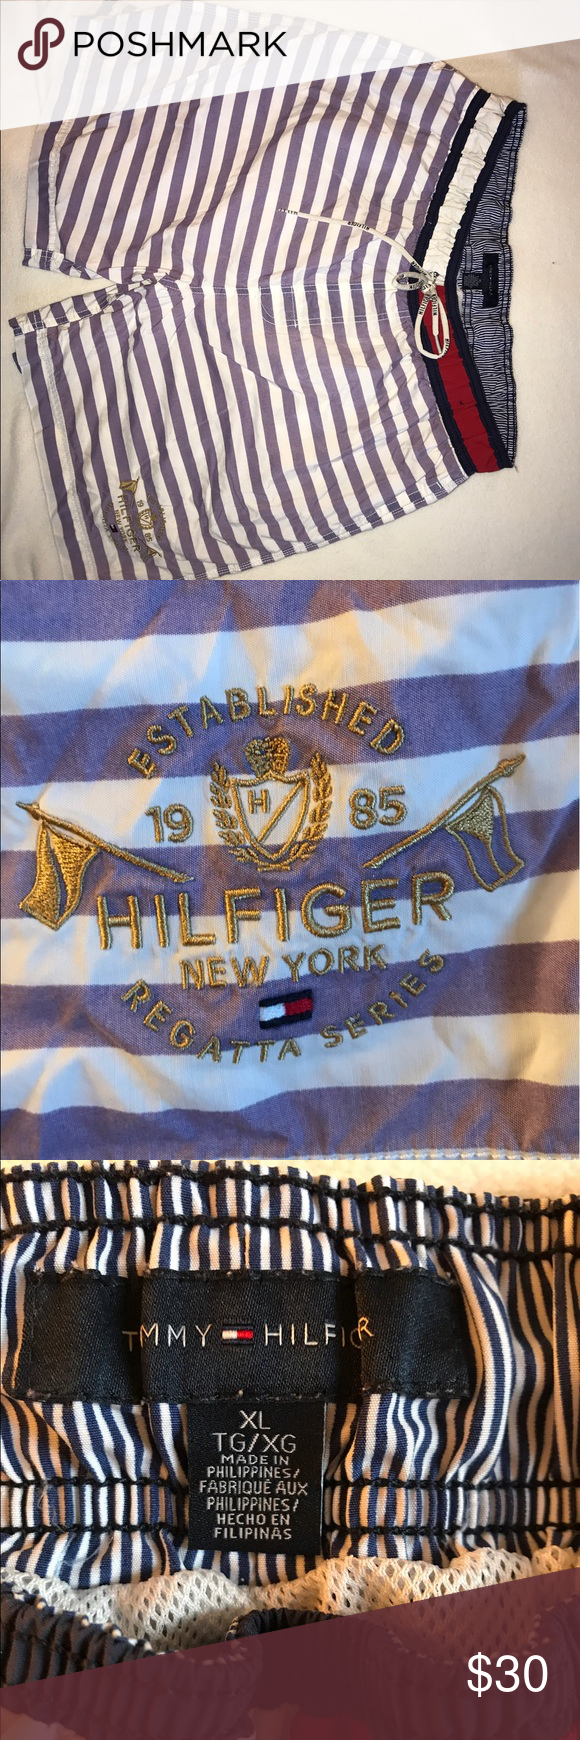 Tommy Hilfiger swim shorts Great condition can fit Large too Tommy Hilfiger Swim